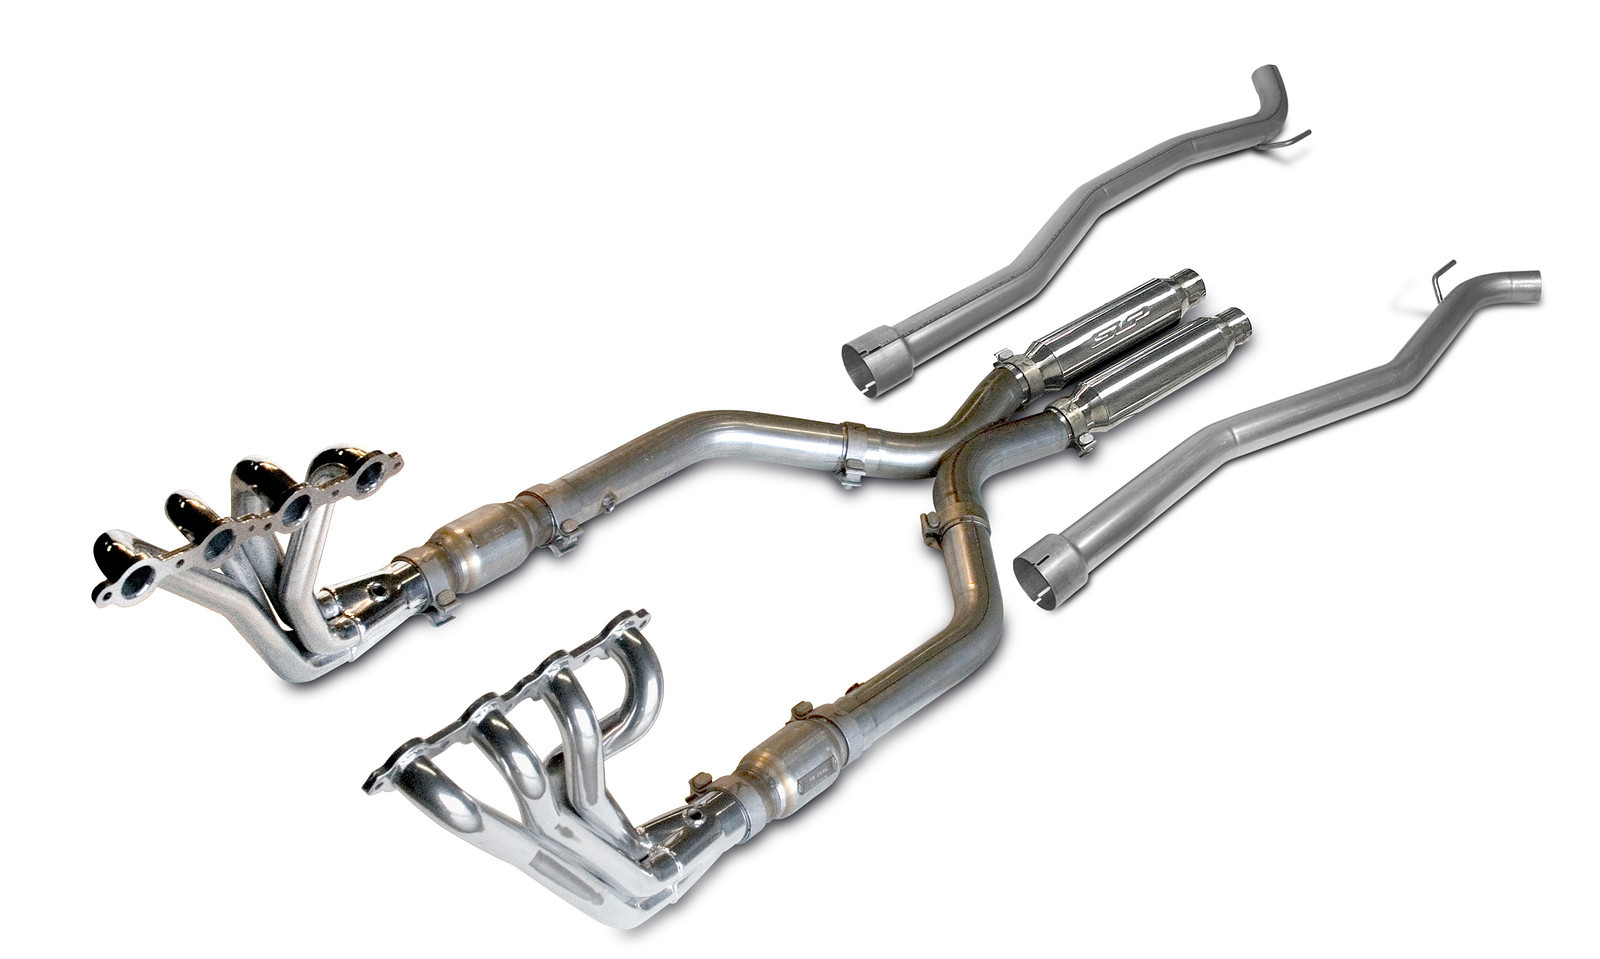 2010-2015 Camaro V8 Coupe Header Package - Long Tube Header, Assembly, LoudMouth II